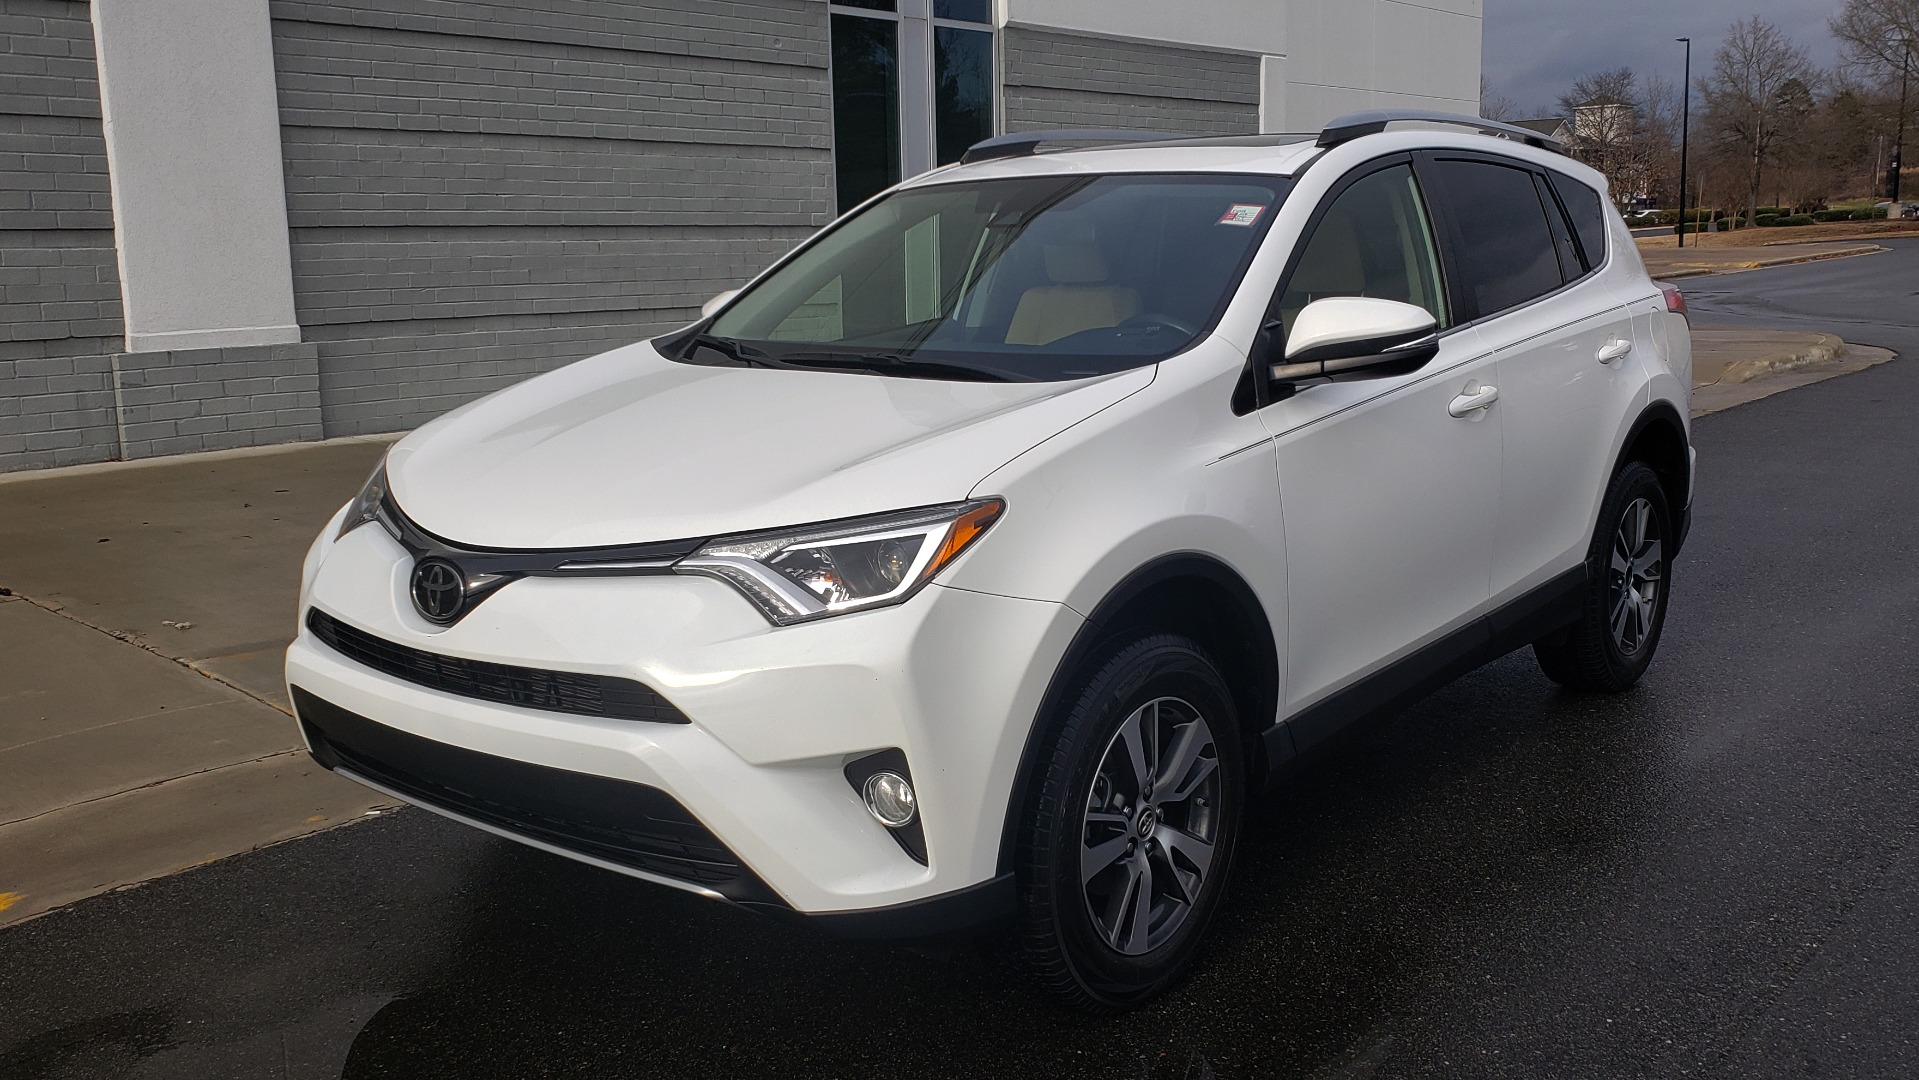 Used 2018 Toyota RAV4 XLE / FWD / 4-CYL / 6-SPD AUTO / BSM / REAR CROSS TRAFFIC ALERT for sale Sold at Formula Imports in Charlotte NC 28227 3